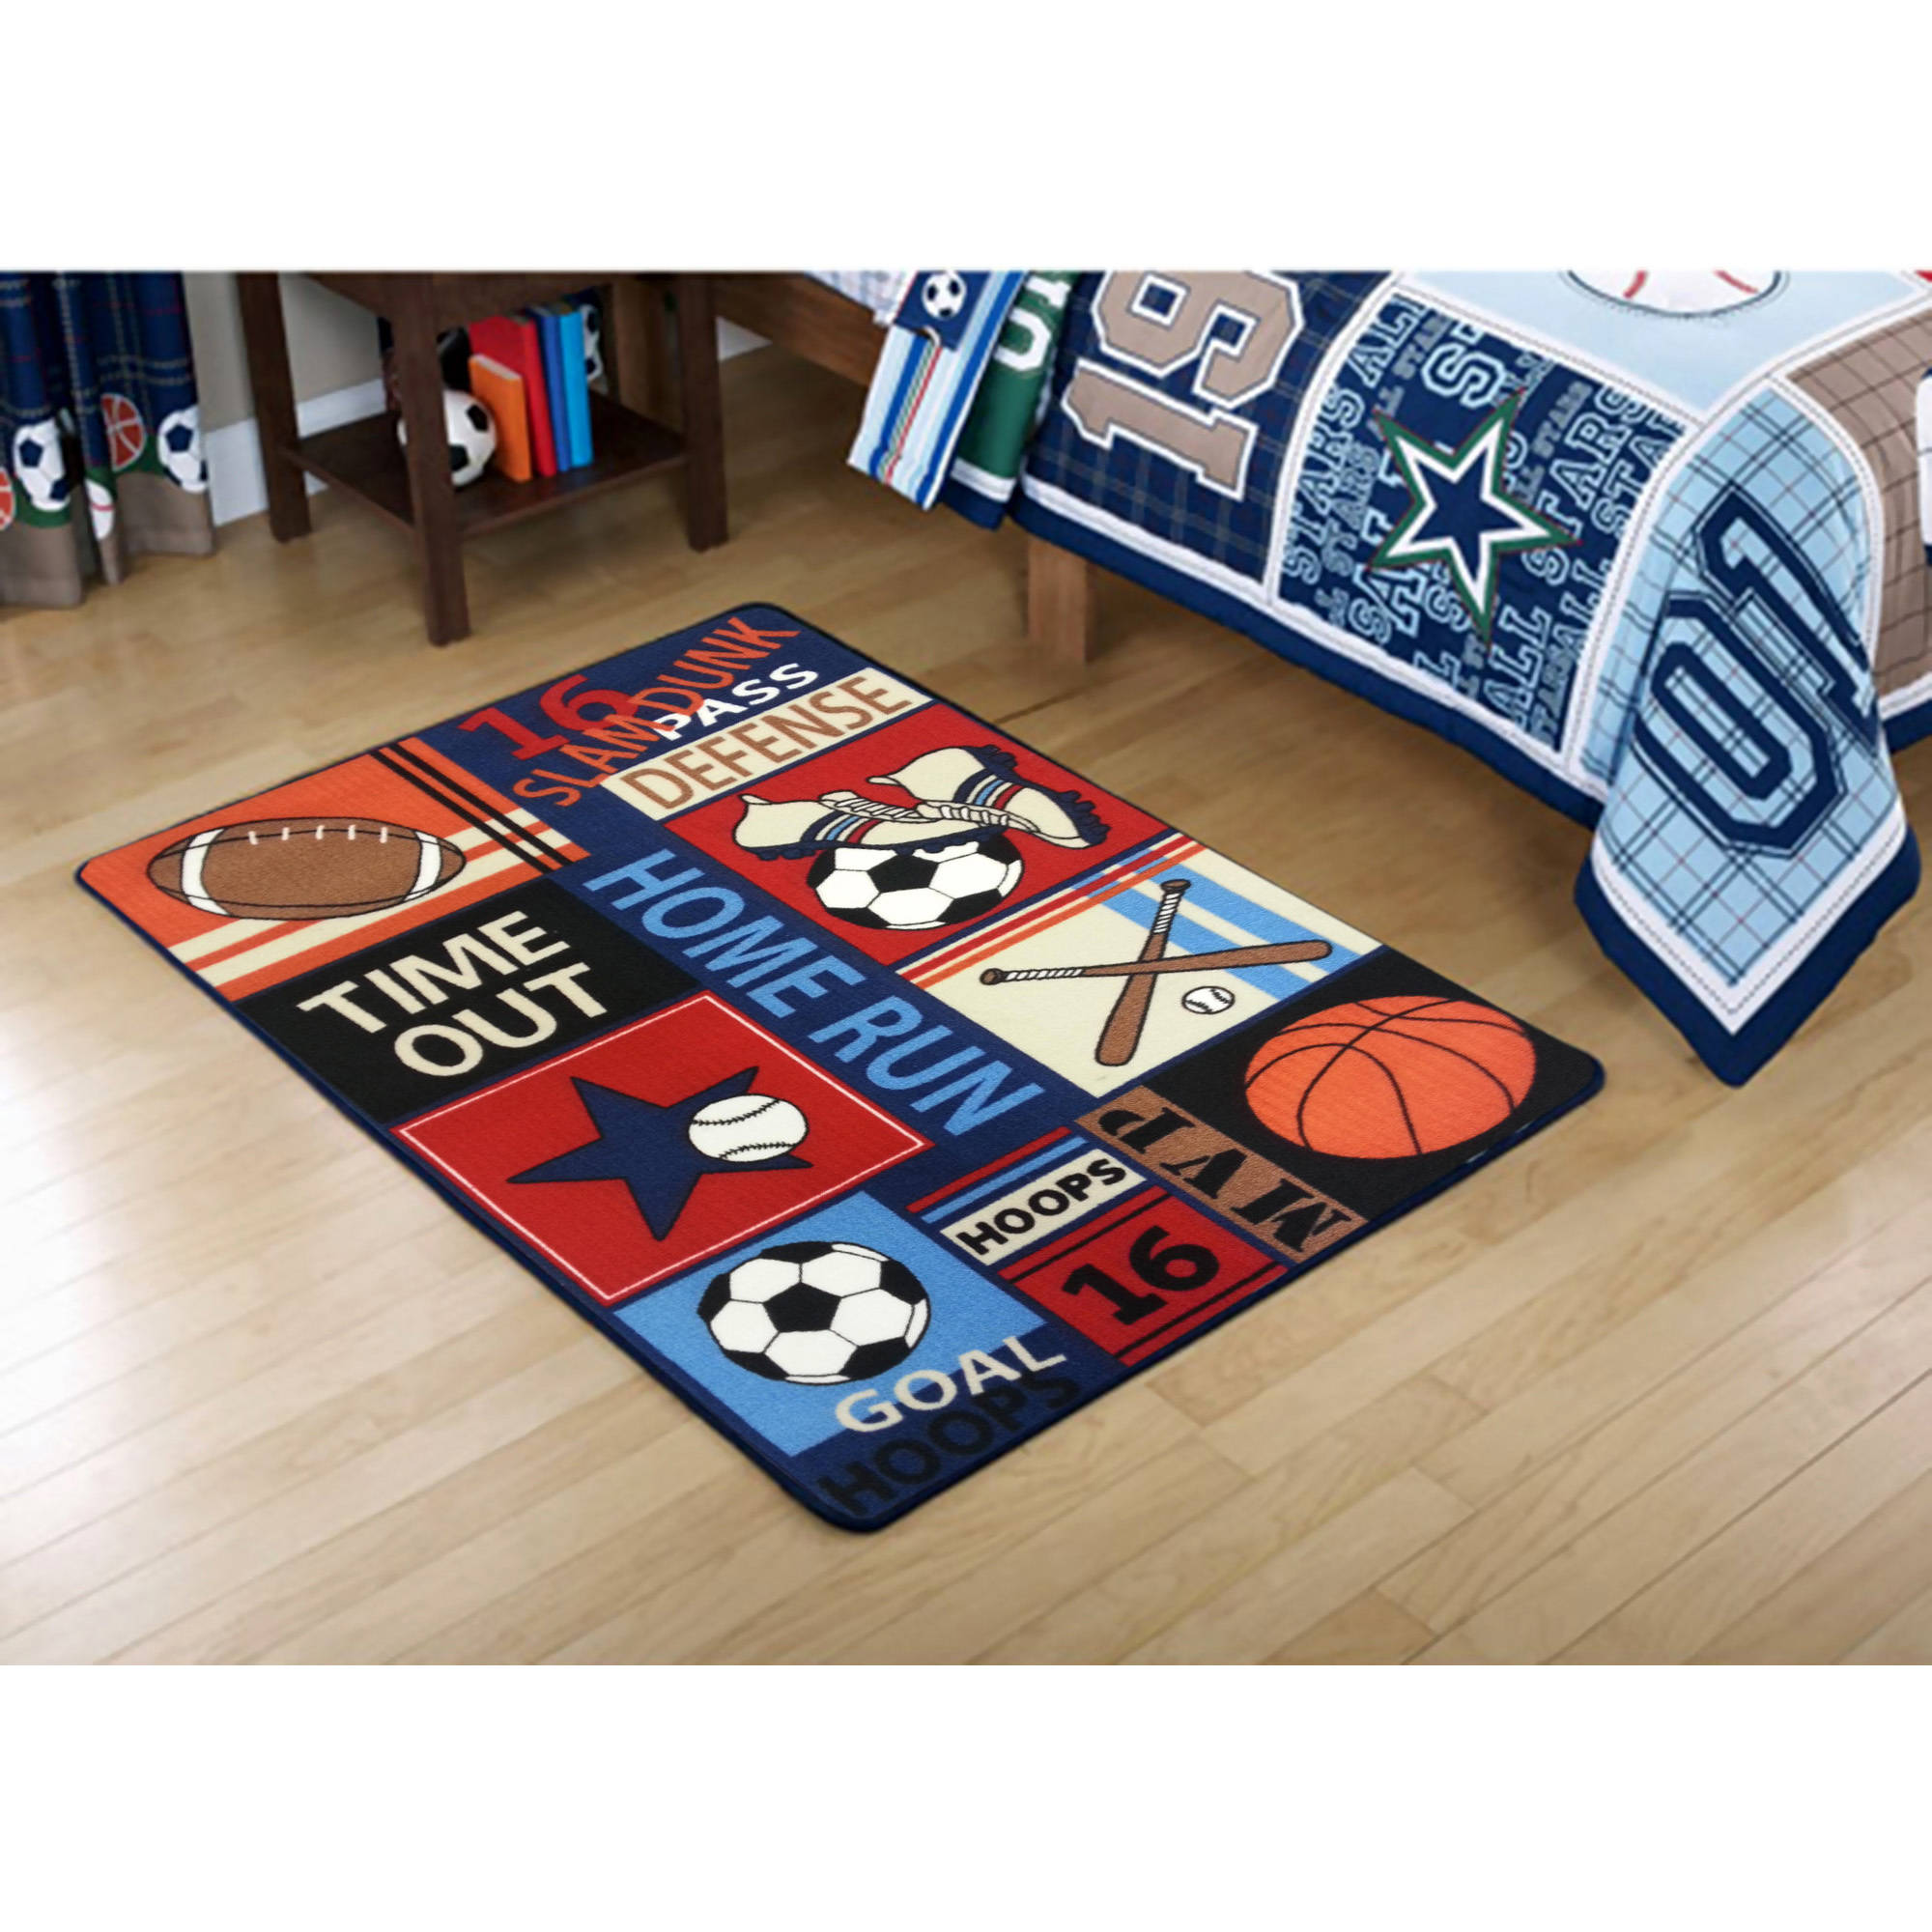 Mainstays Kids All Star Polyester Rectangular Rug, Multi-Color, 3' x 4'8""